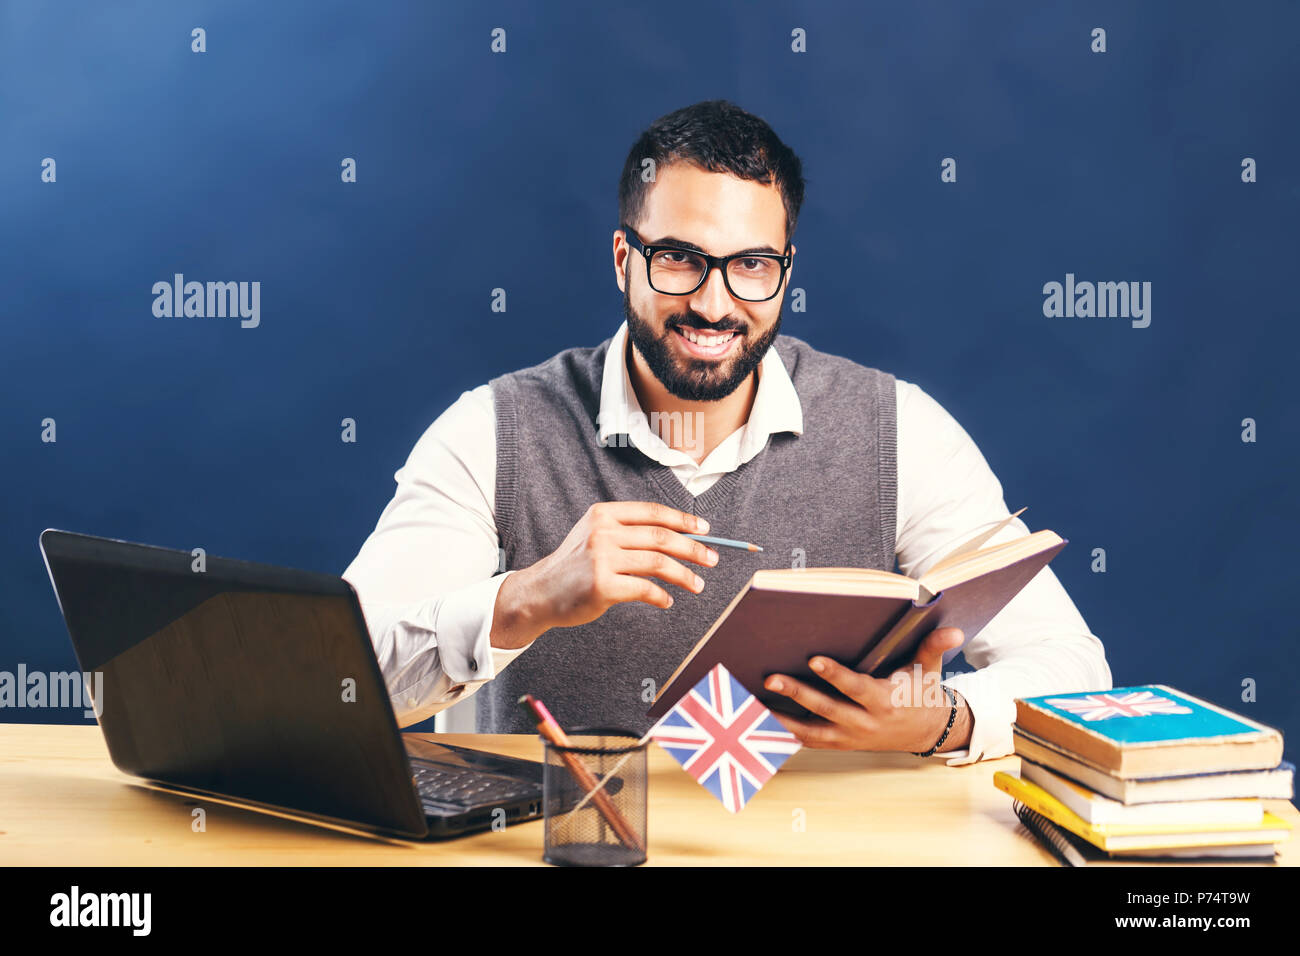 Black-haired bearded man learning english, wearing gray sweater vest and pristine white shirt, working hard at the office desk with laptop before black wall - Stock Image